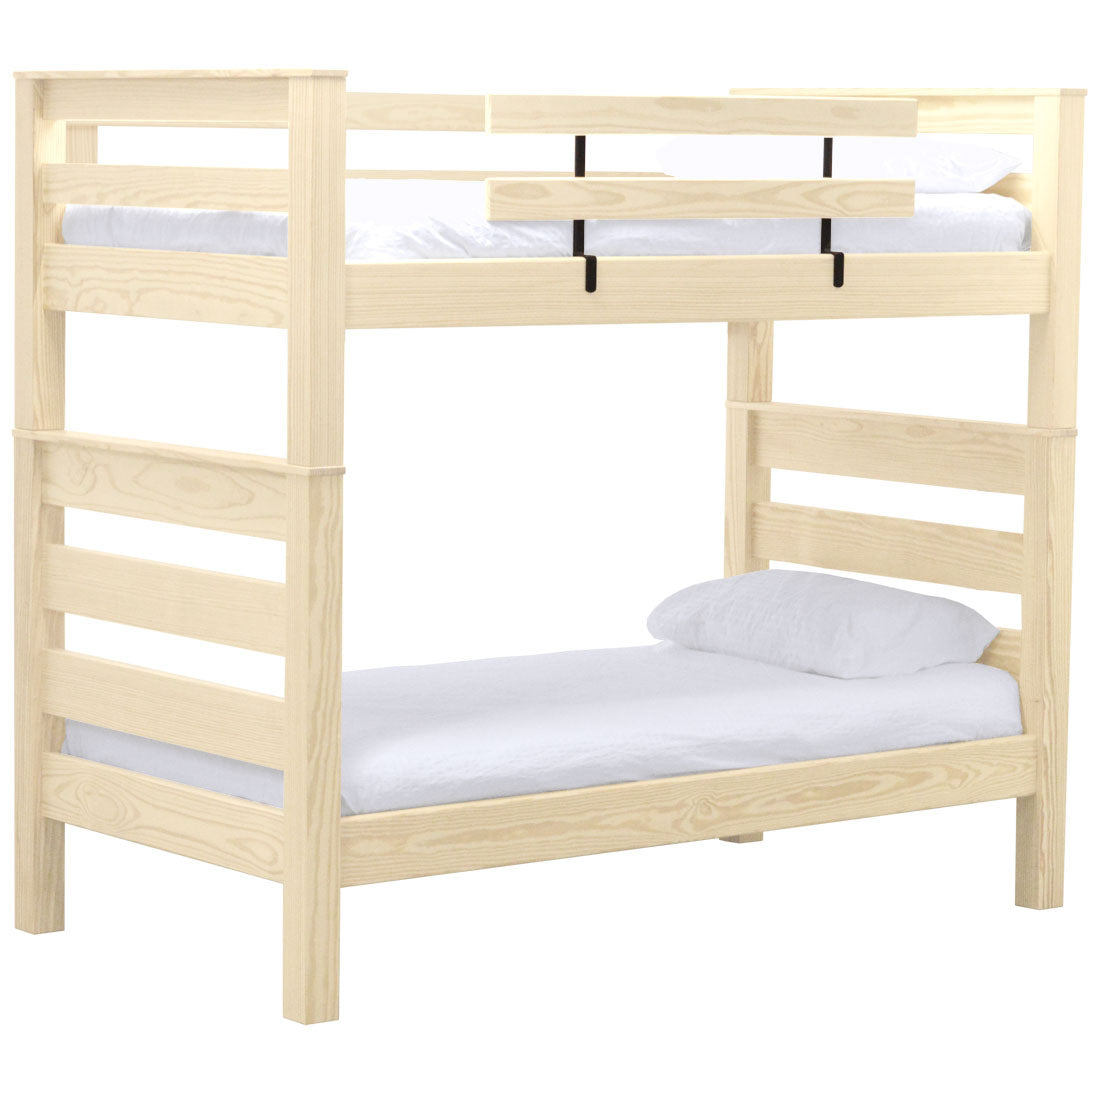 Timberframe Bunk Bed Twin Over Twin Crate Designs Furniture